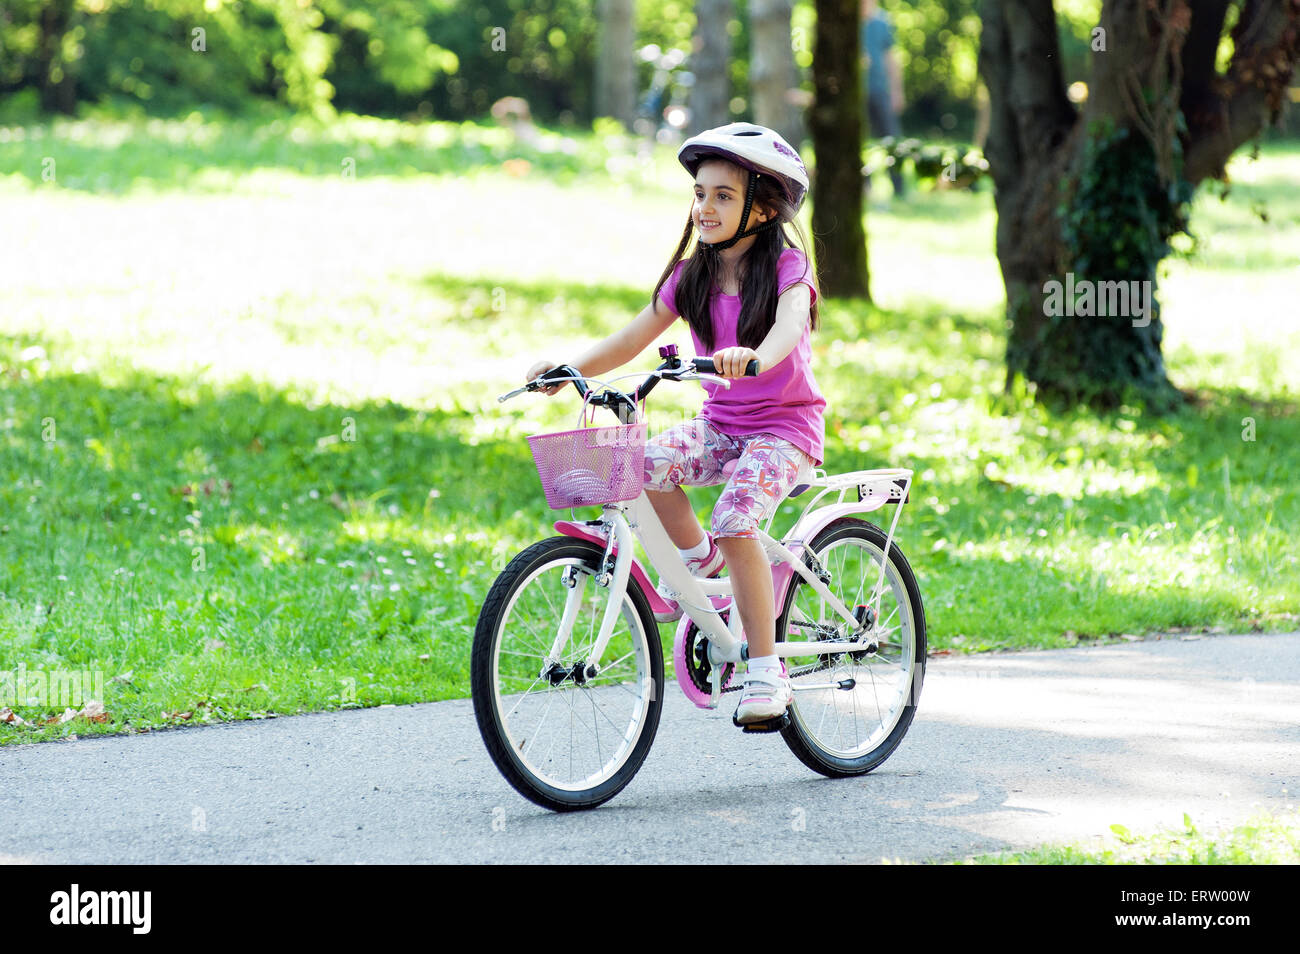 Little girl in a trendy pink outfit with matching pink bike and helmet riding her bicycle - Stock Image